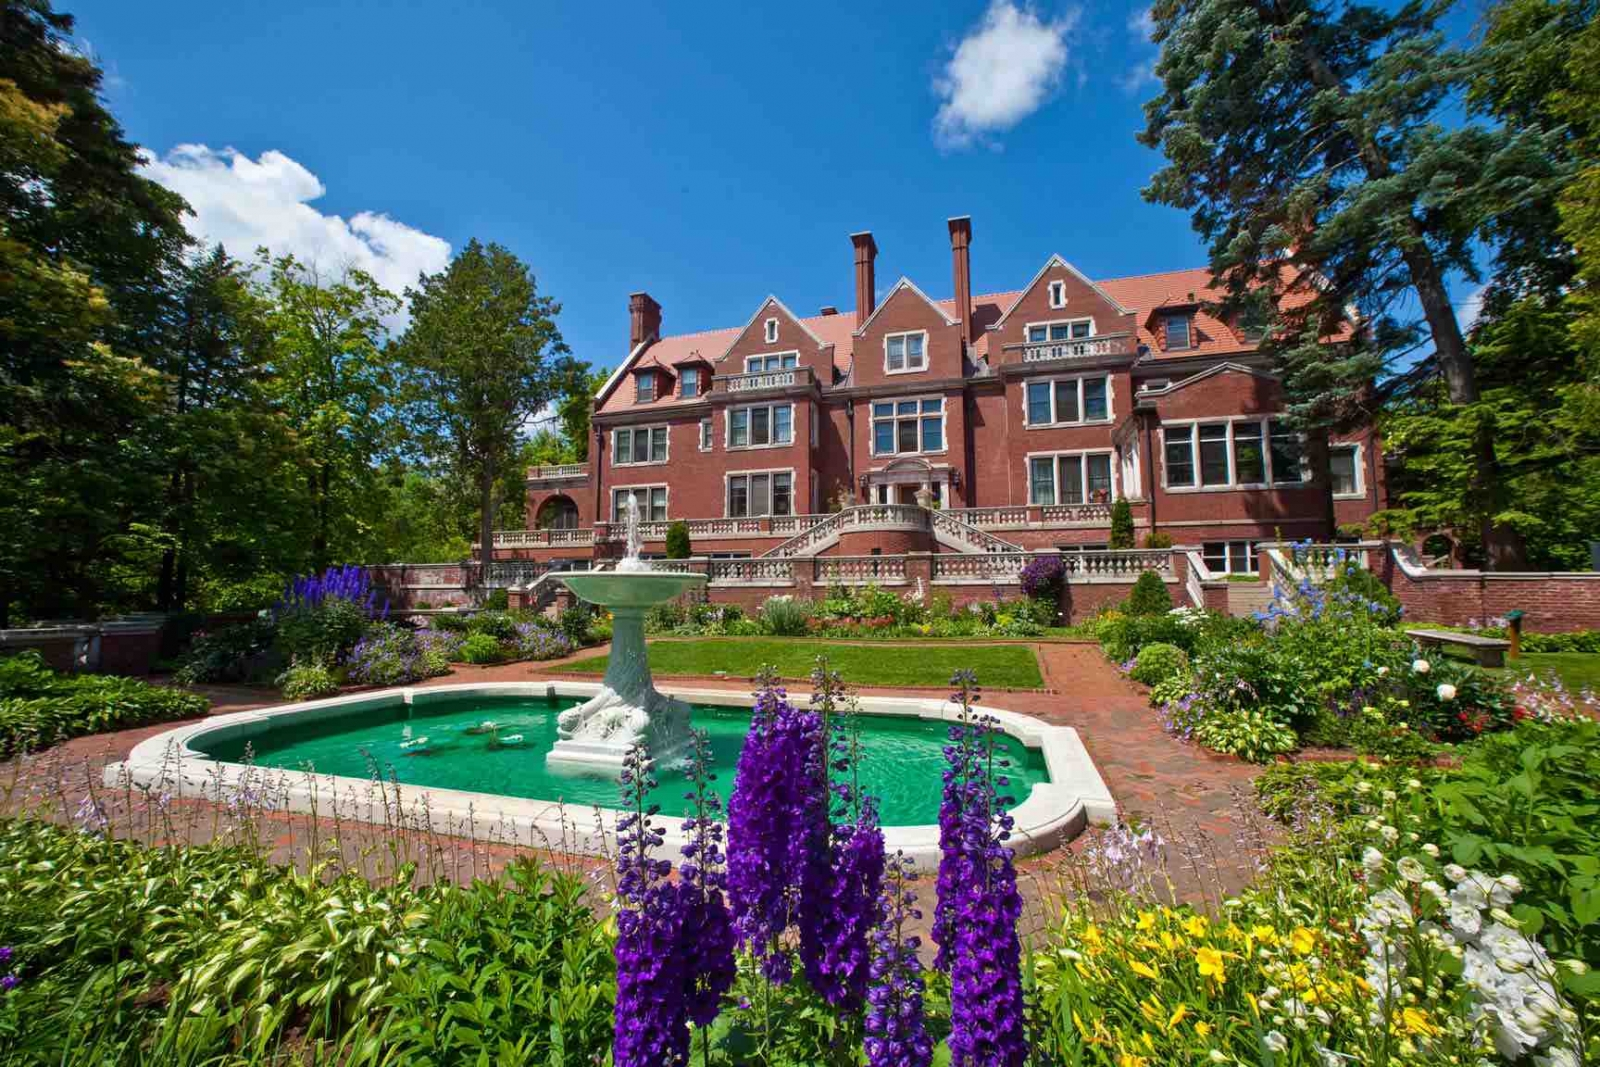 A south view of the mansion offers a glimpse of the formal gardens and fountain, too. Courtesy Glensheen Mansion.